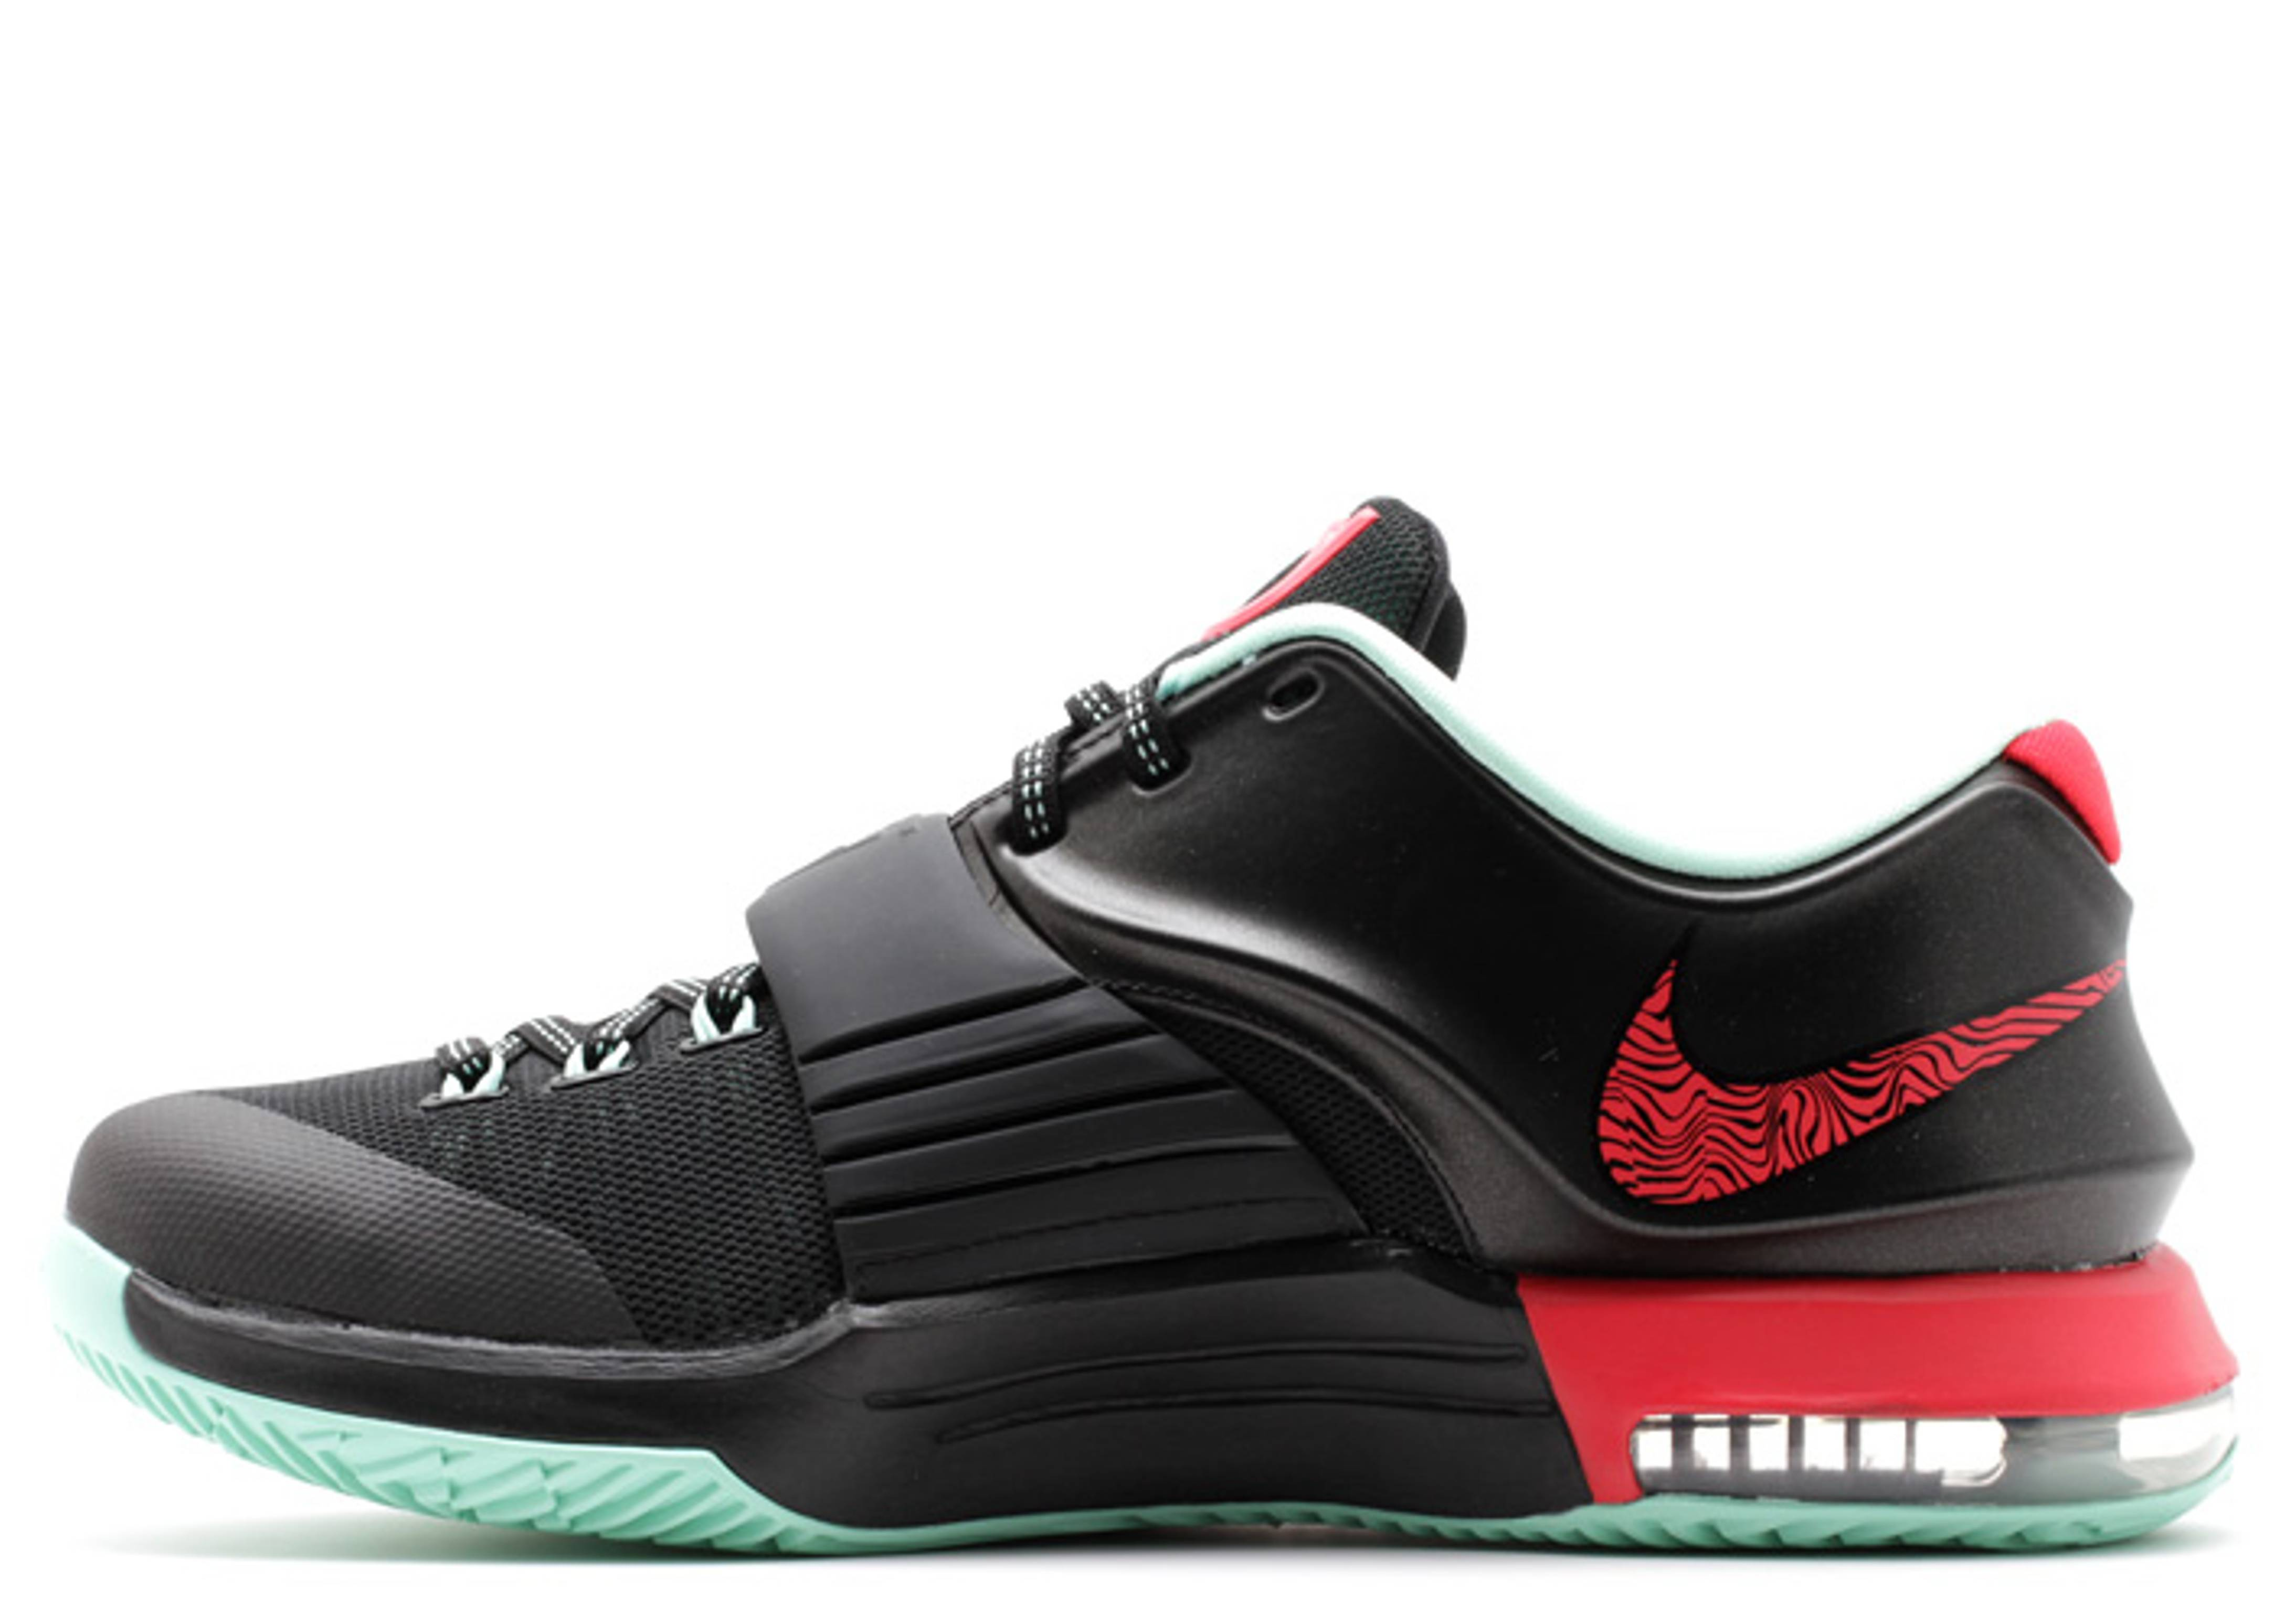 separation shoes a6852 43ad8 ... kd 7 bad apples nike 653996 063 black action red medium mint flight club